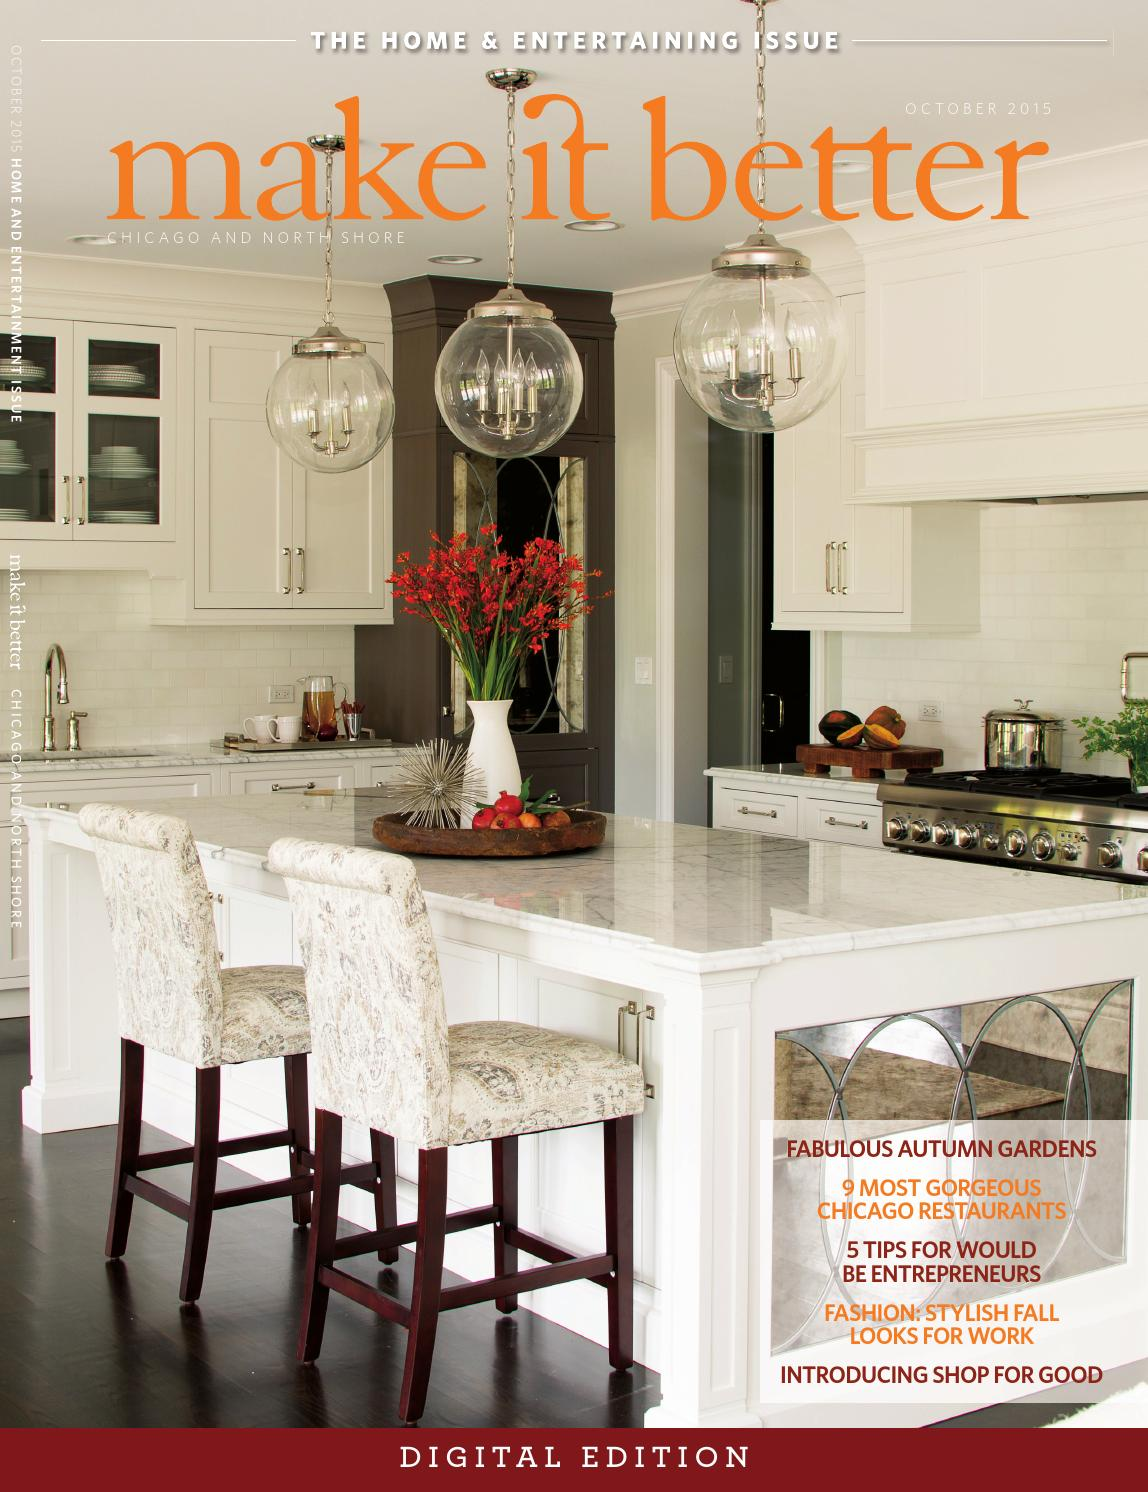 039042825733 Make It Better October 2015 by Make It Better - issuu